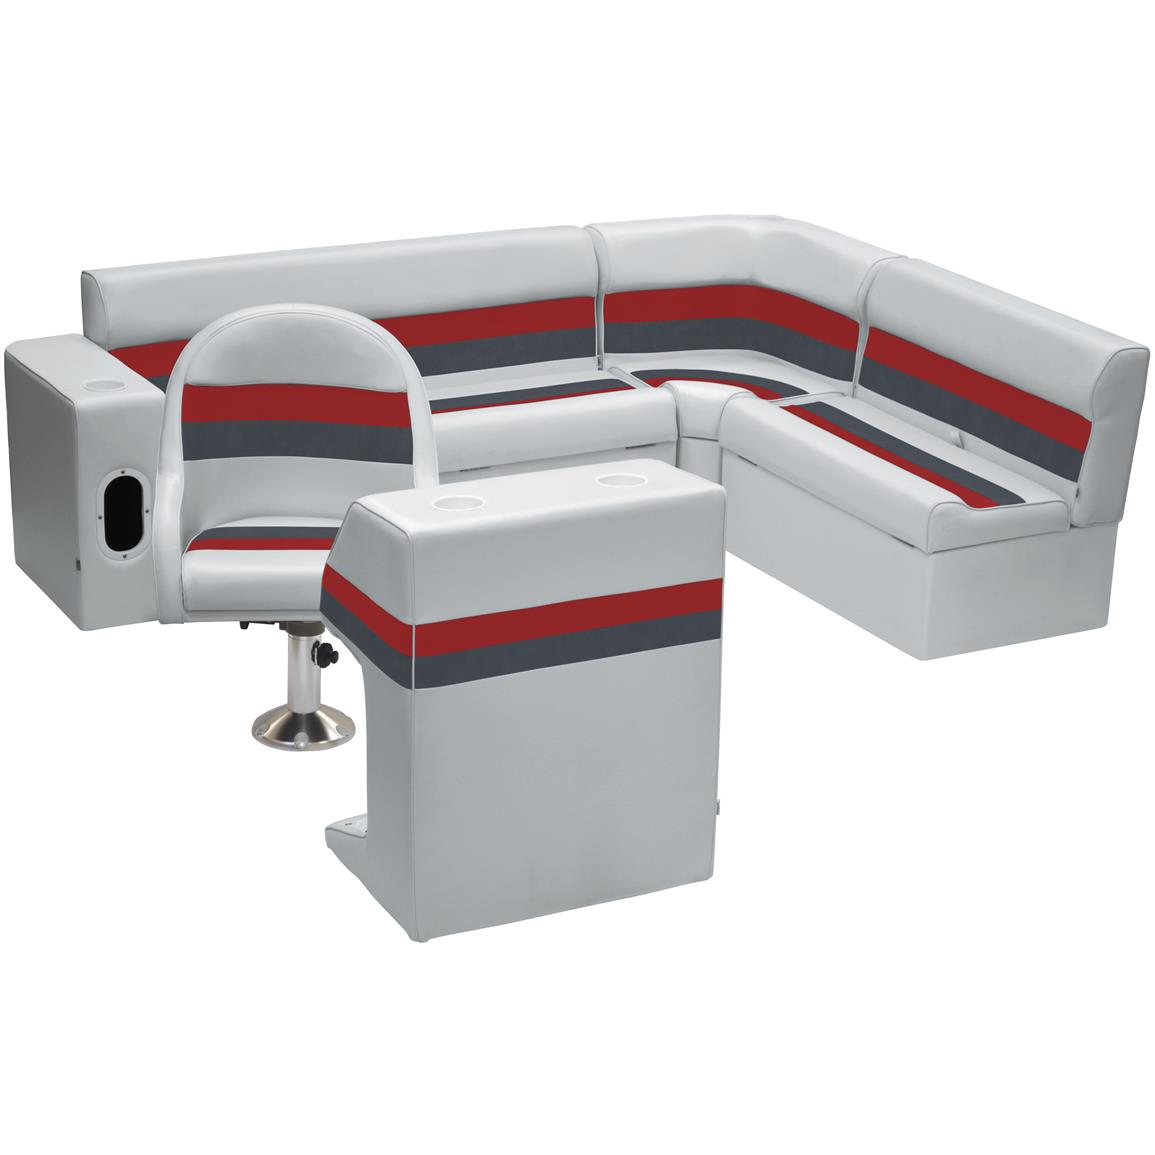 Wise® Deluxe Pontoon Complete Rear Seating Group, Color E: Light Grey / Charcoal / Red